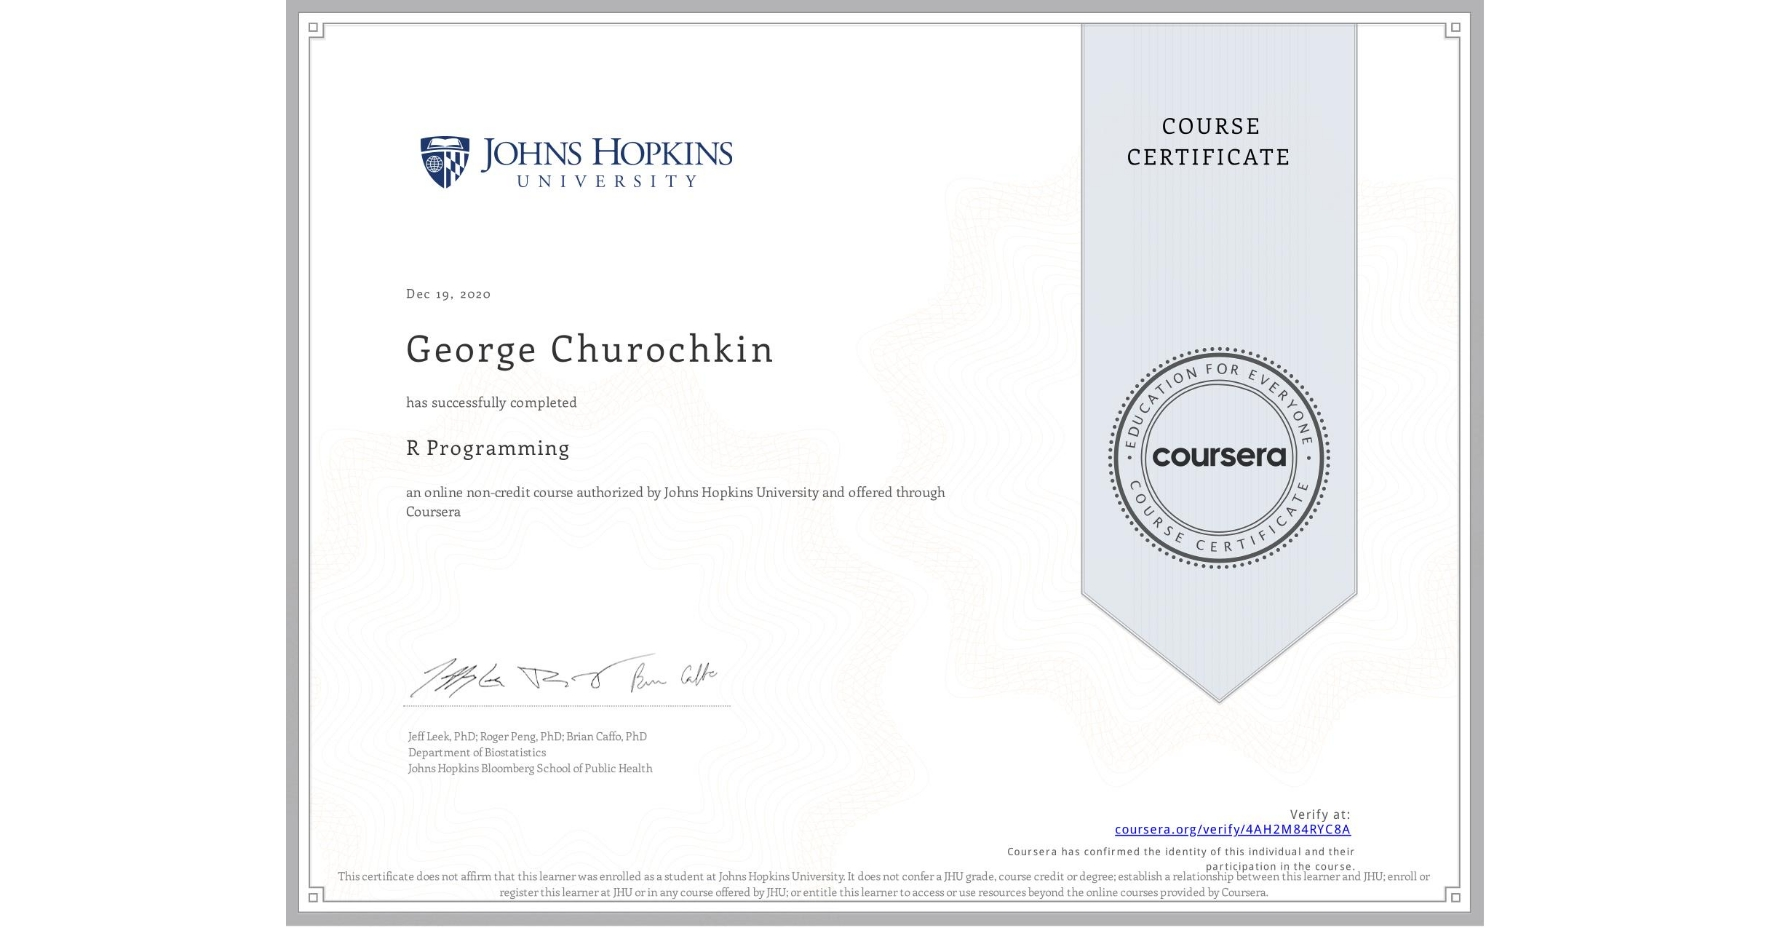 View certificate for Георгий Чурочкин, R Programming, an online non-credit course authorized by Johns Hopkins University and offered through Coursera